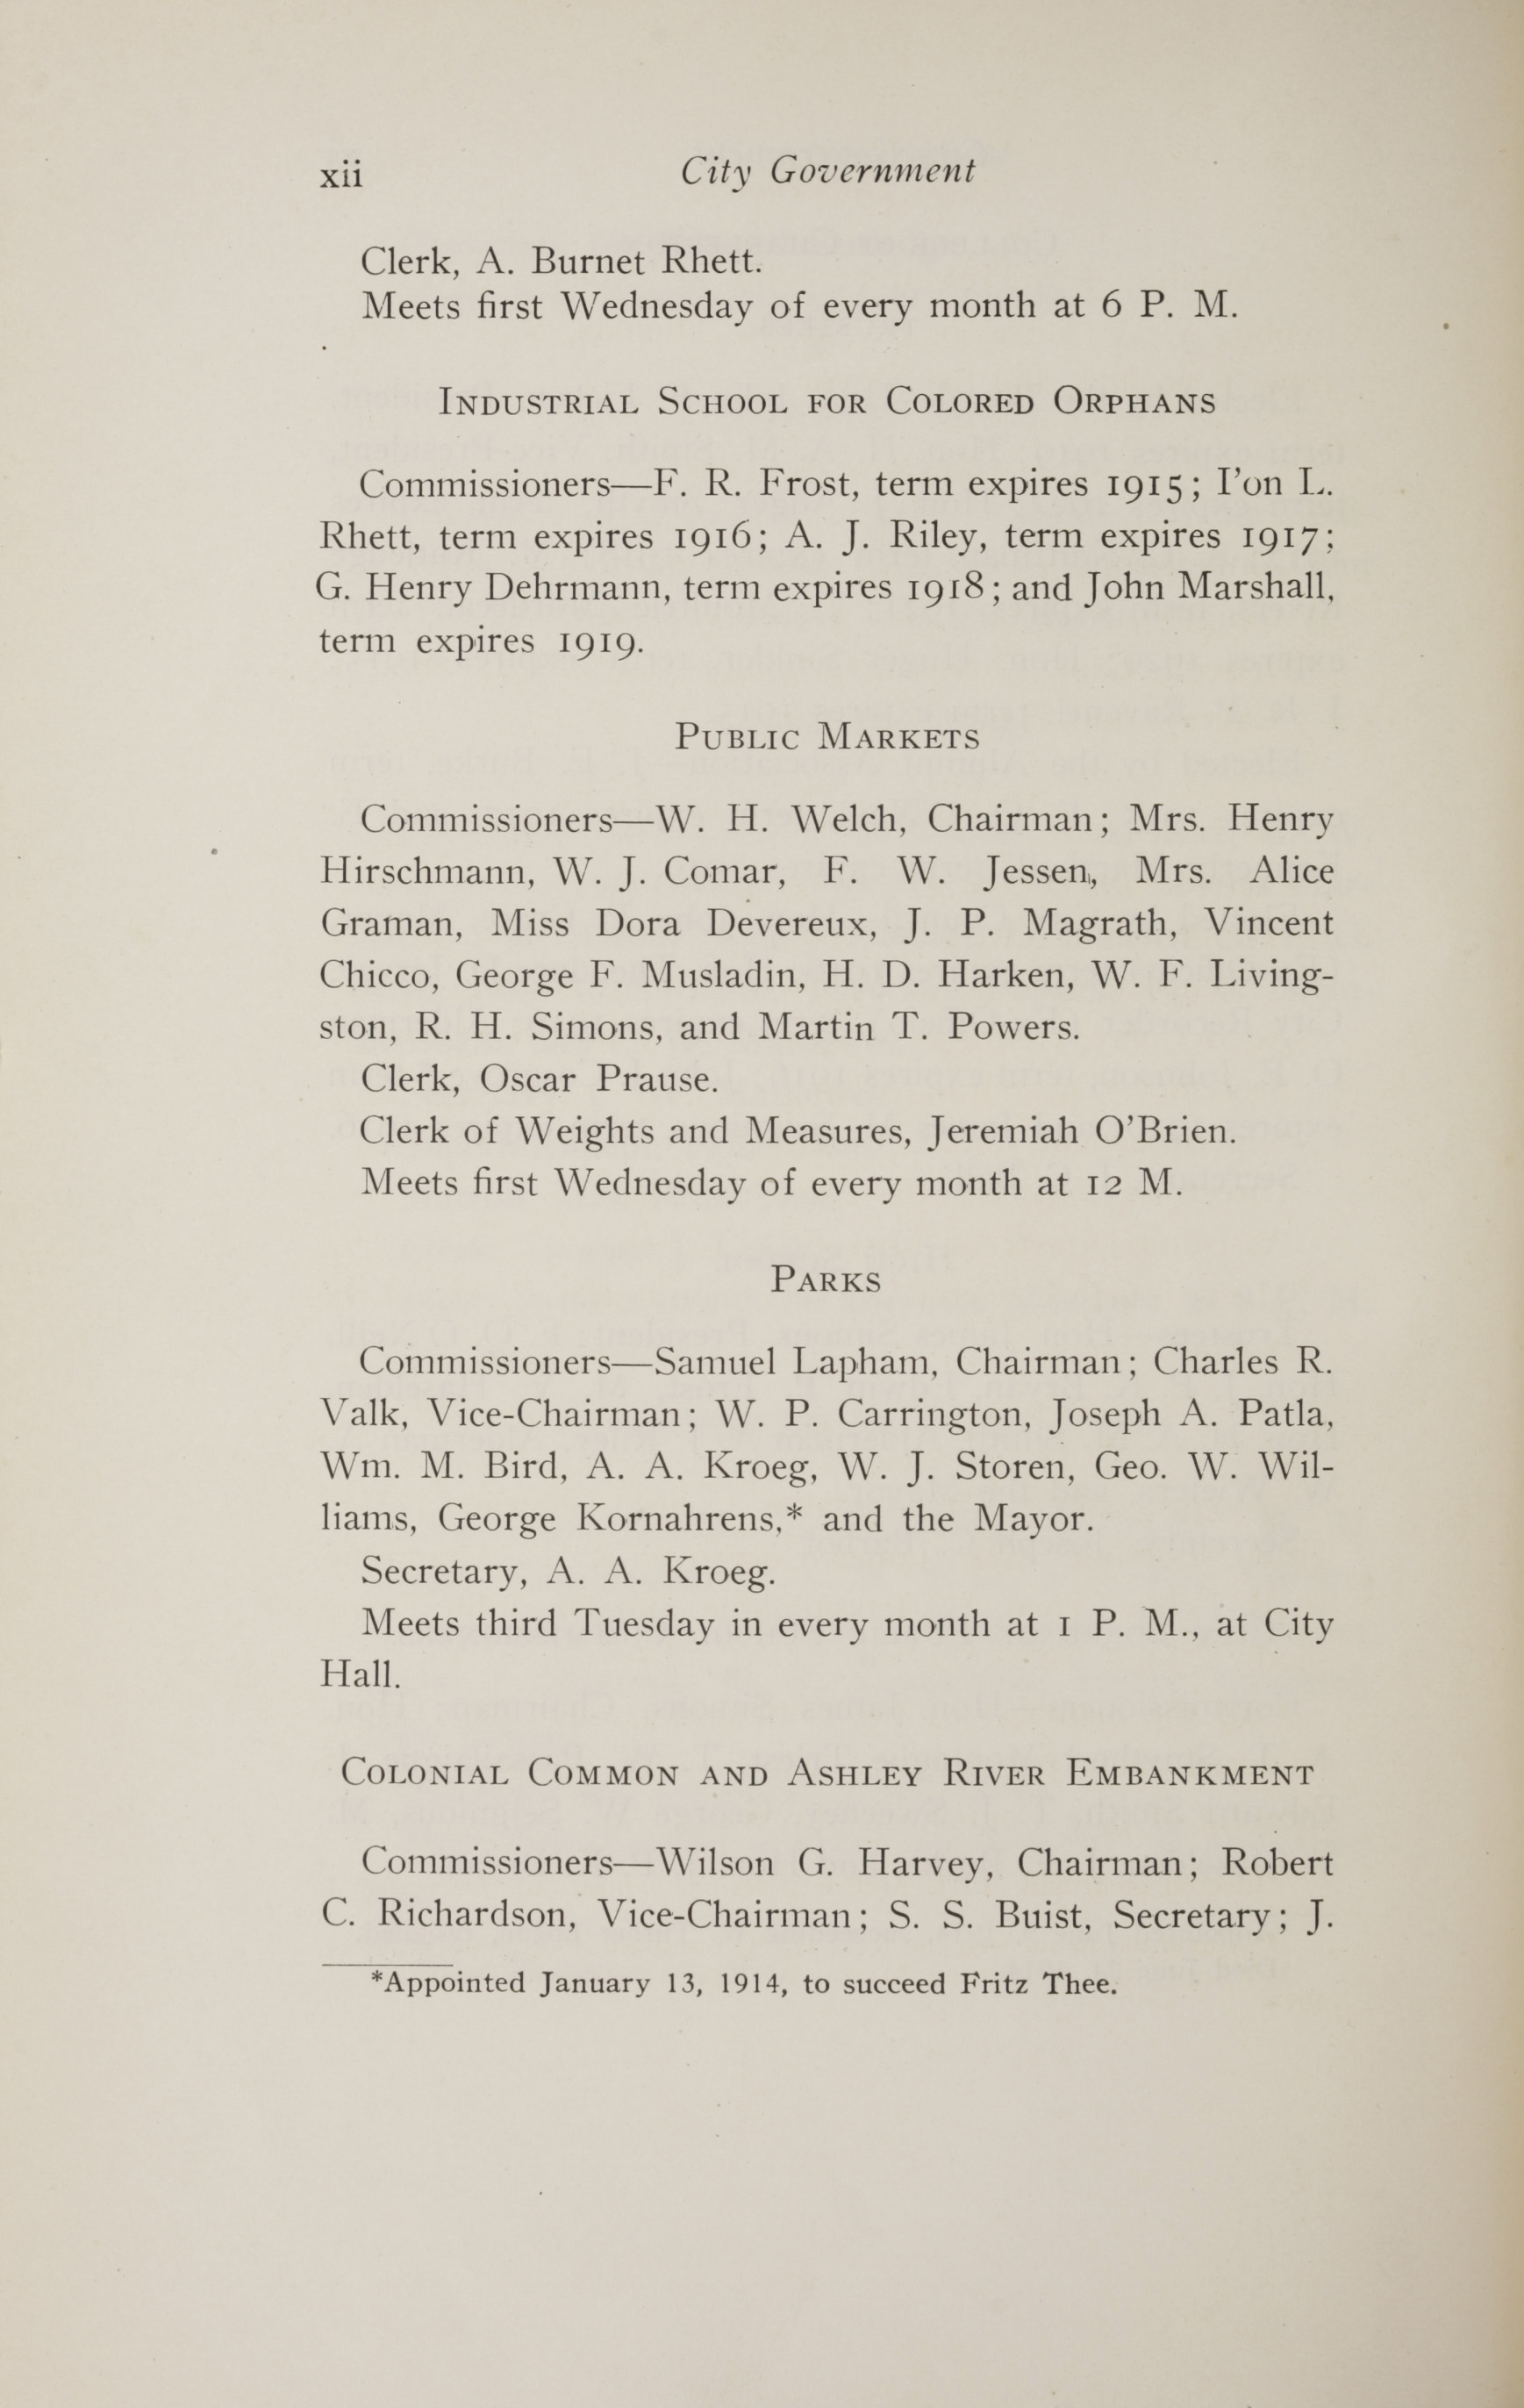 Charleston Yearbook, 1914, page xii